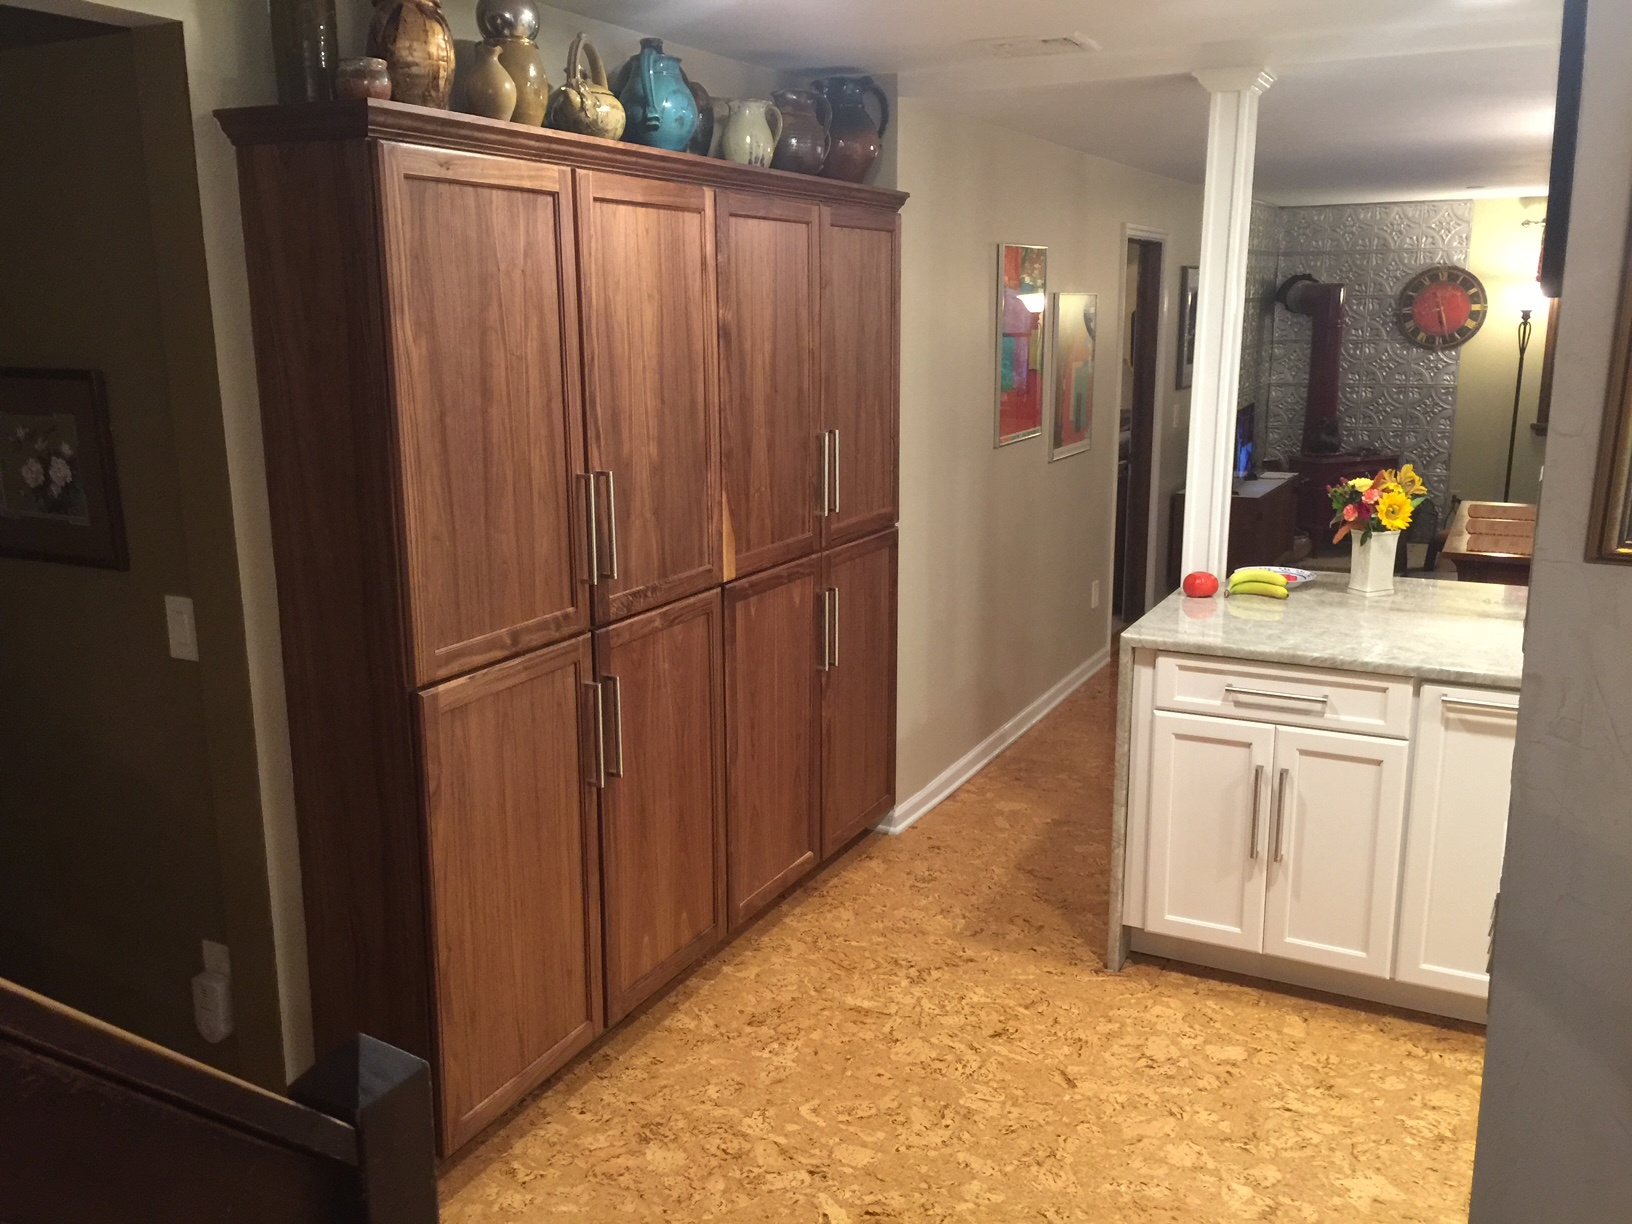 RTA Cabinets from Arkansas Wood Doors - created on a Thermwood Cut Center